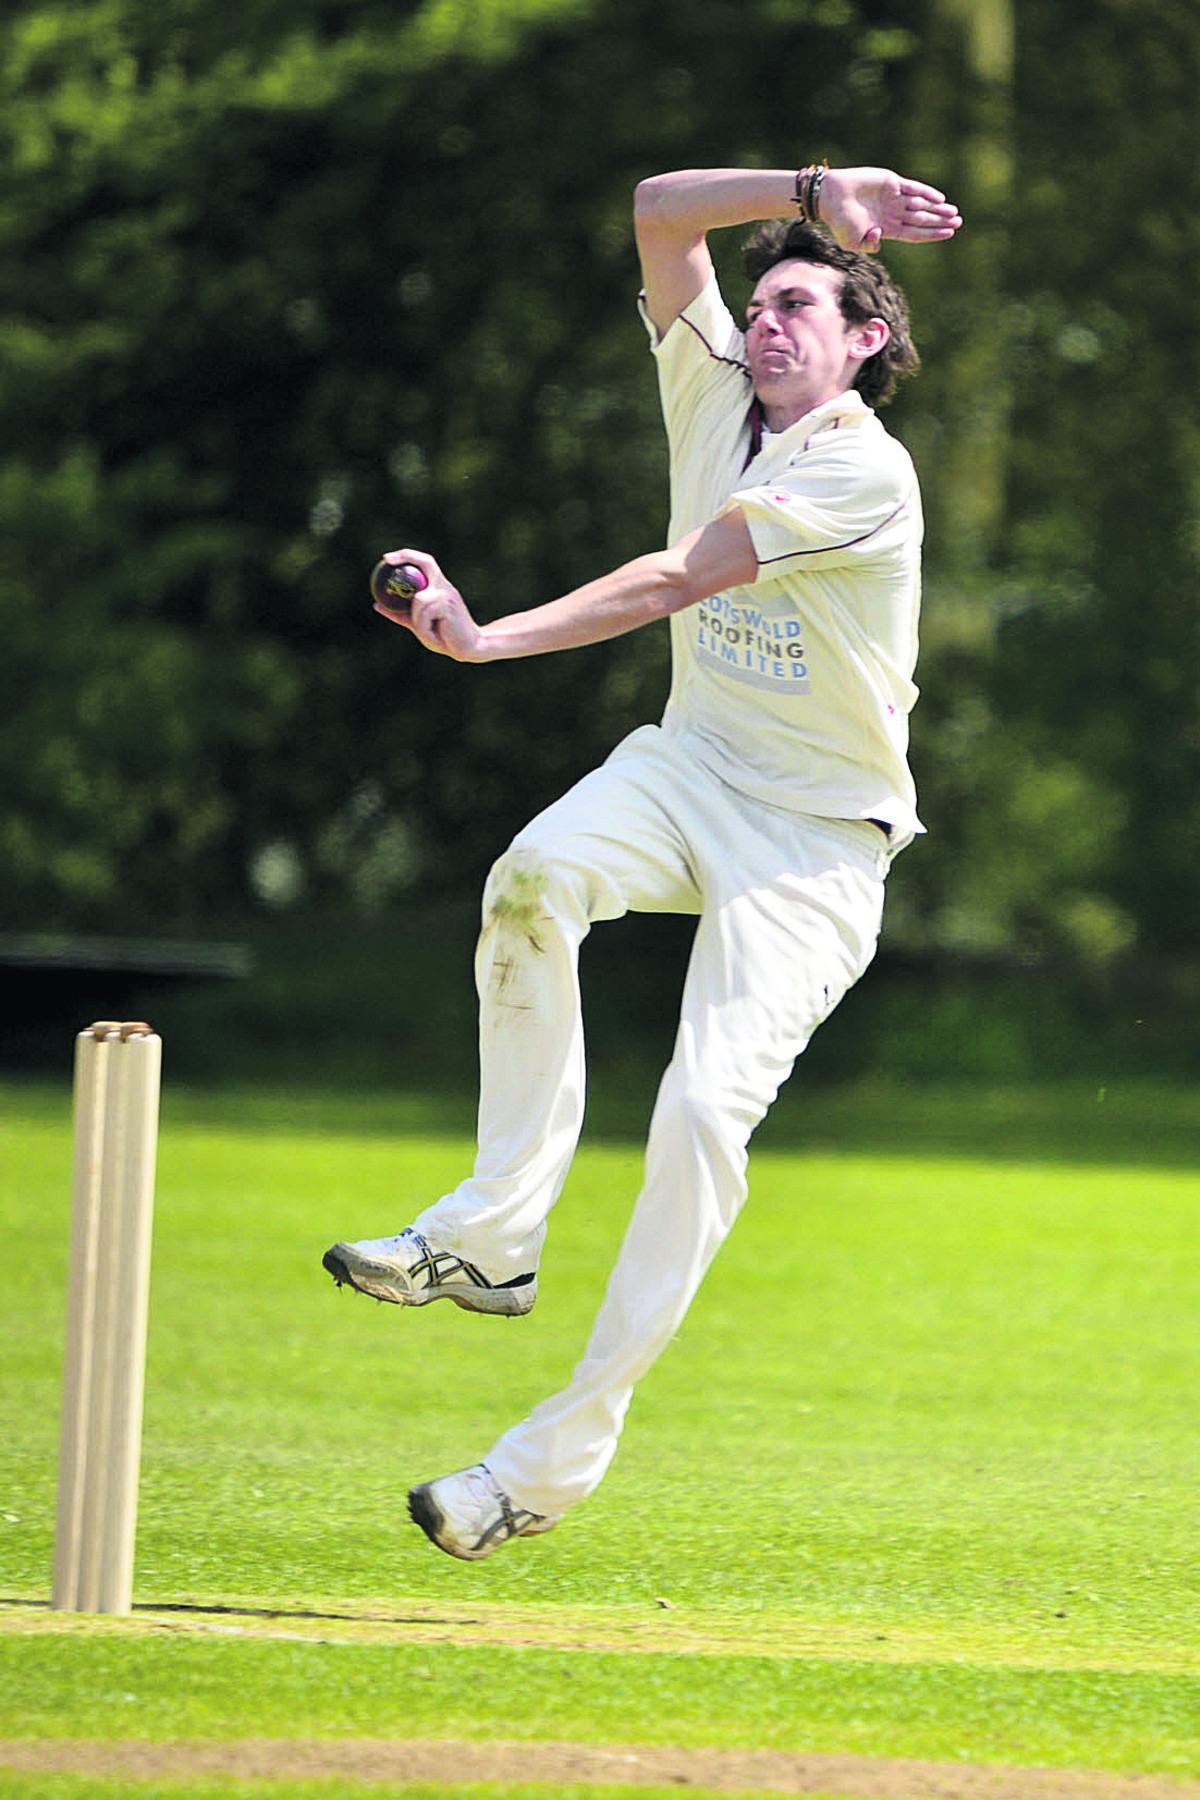 Lawrence Brock claimed figures of 4-13 in seven overs in Great & Little Tew's victory ov